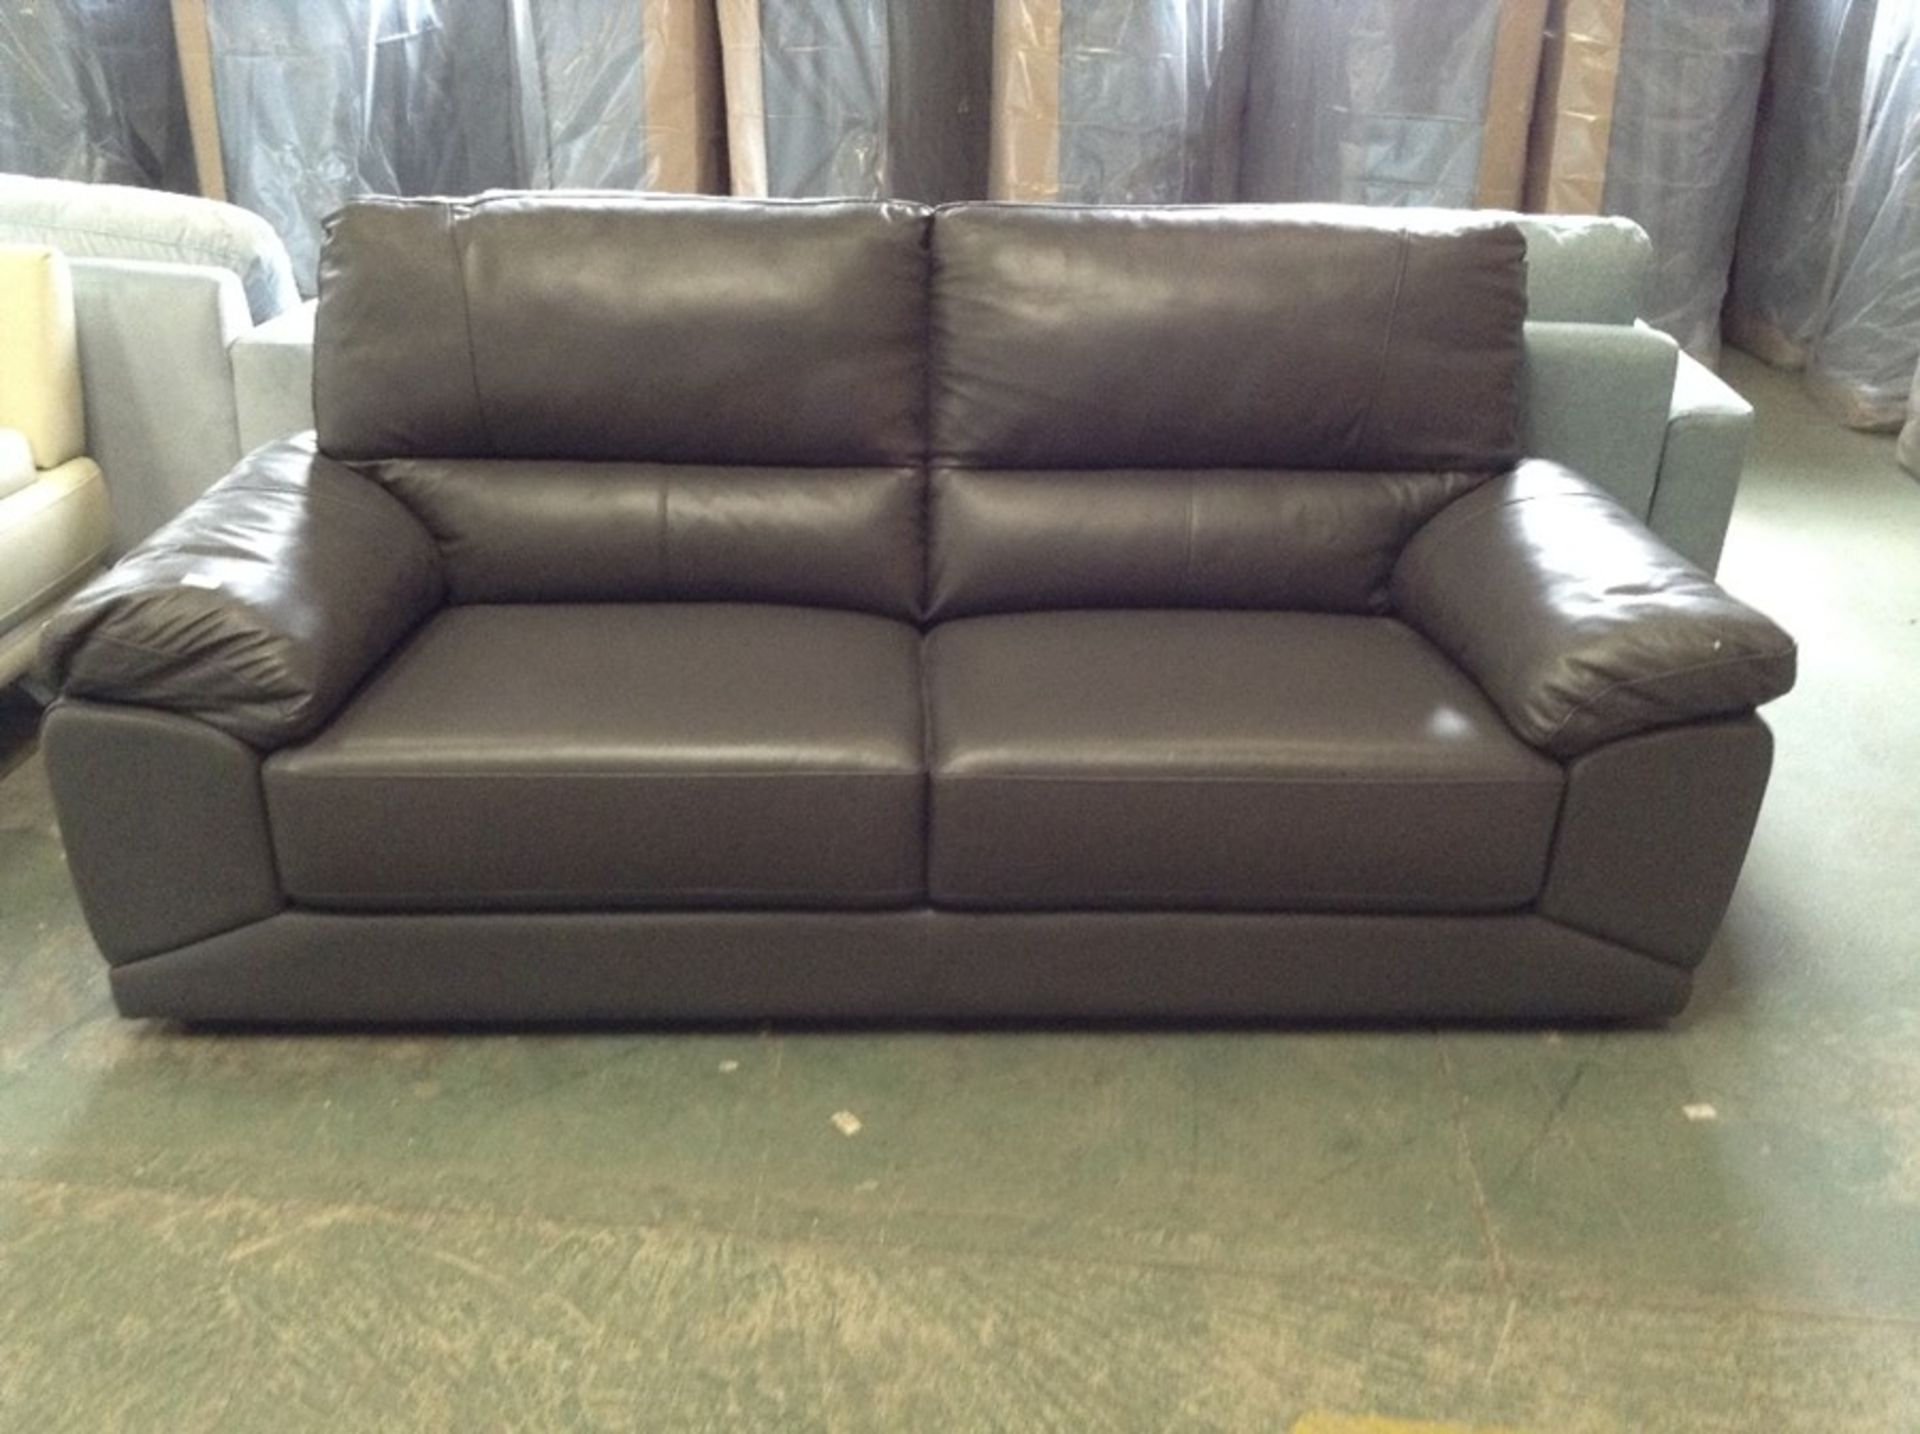 BROWN LEATHER 3 SEATER SOFA (RIPS ON CORNERS)